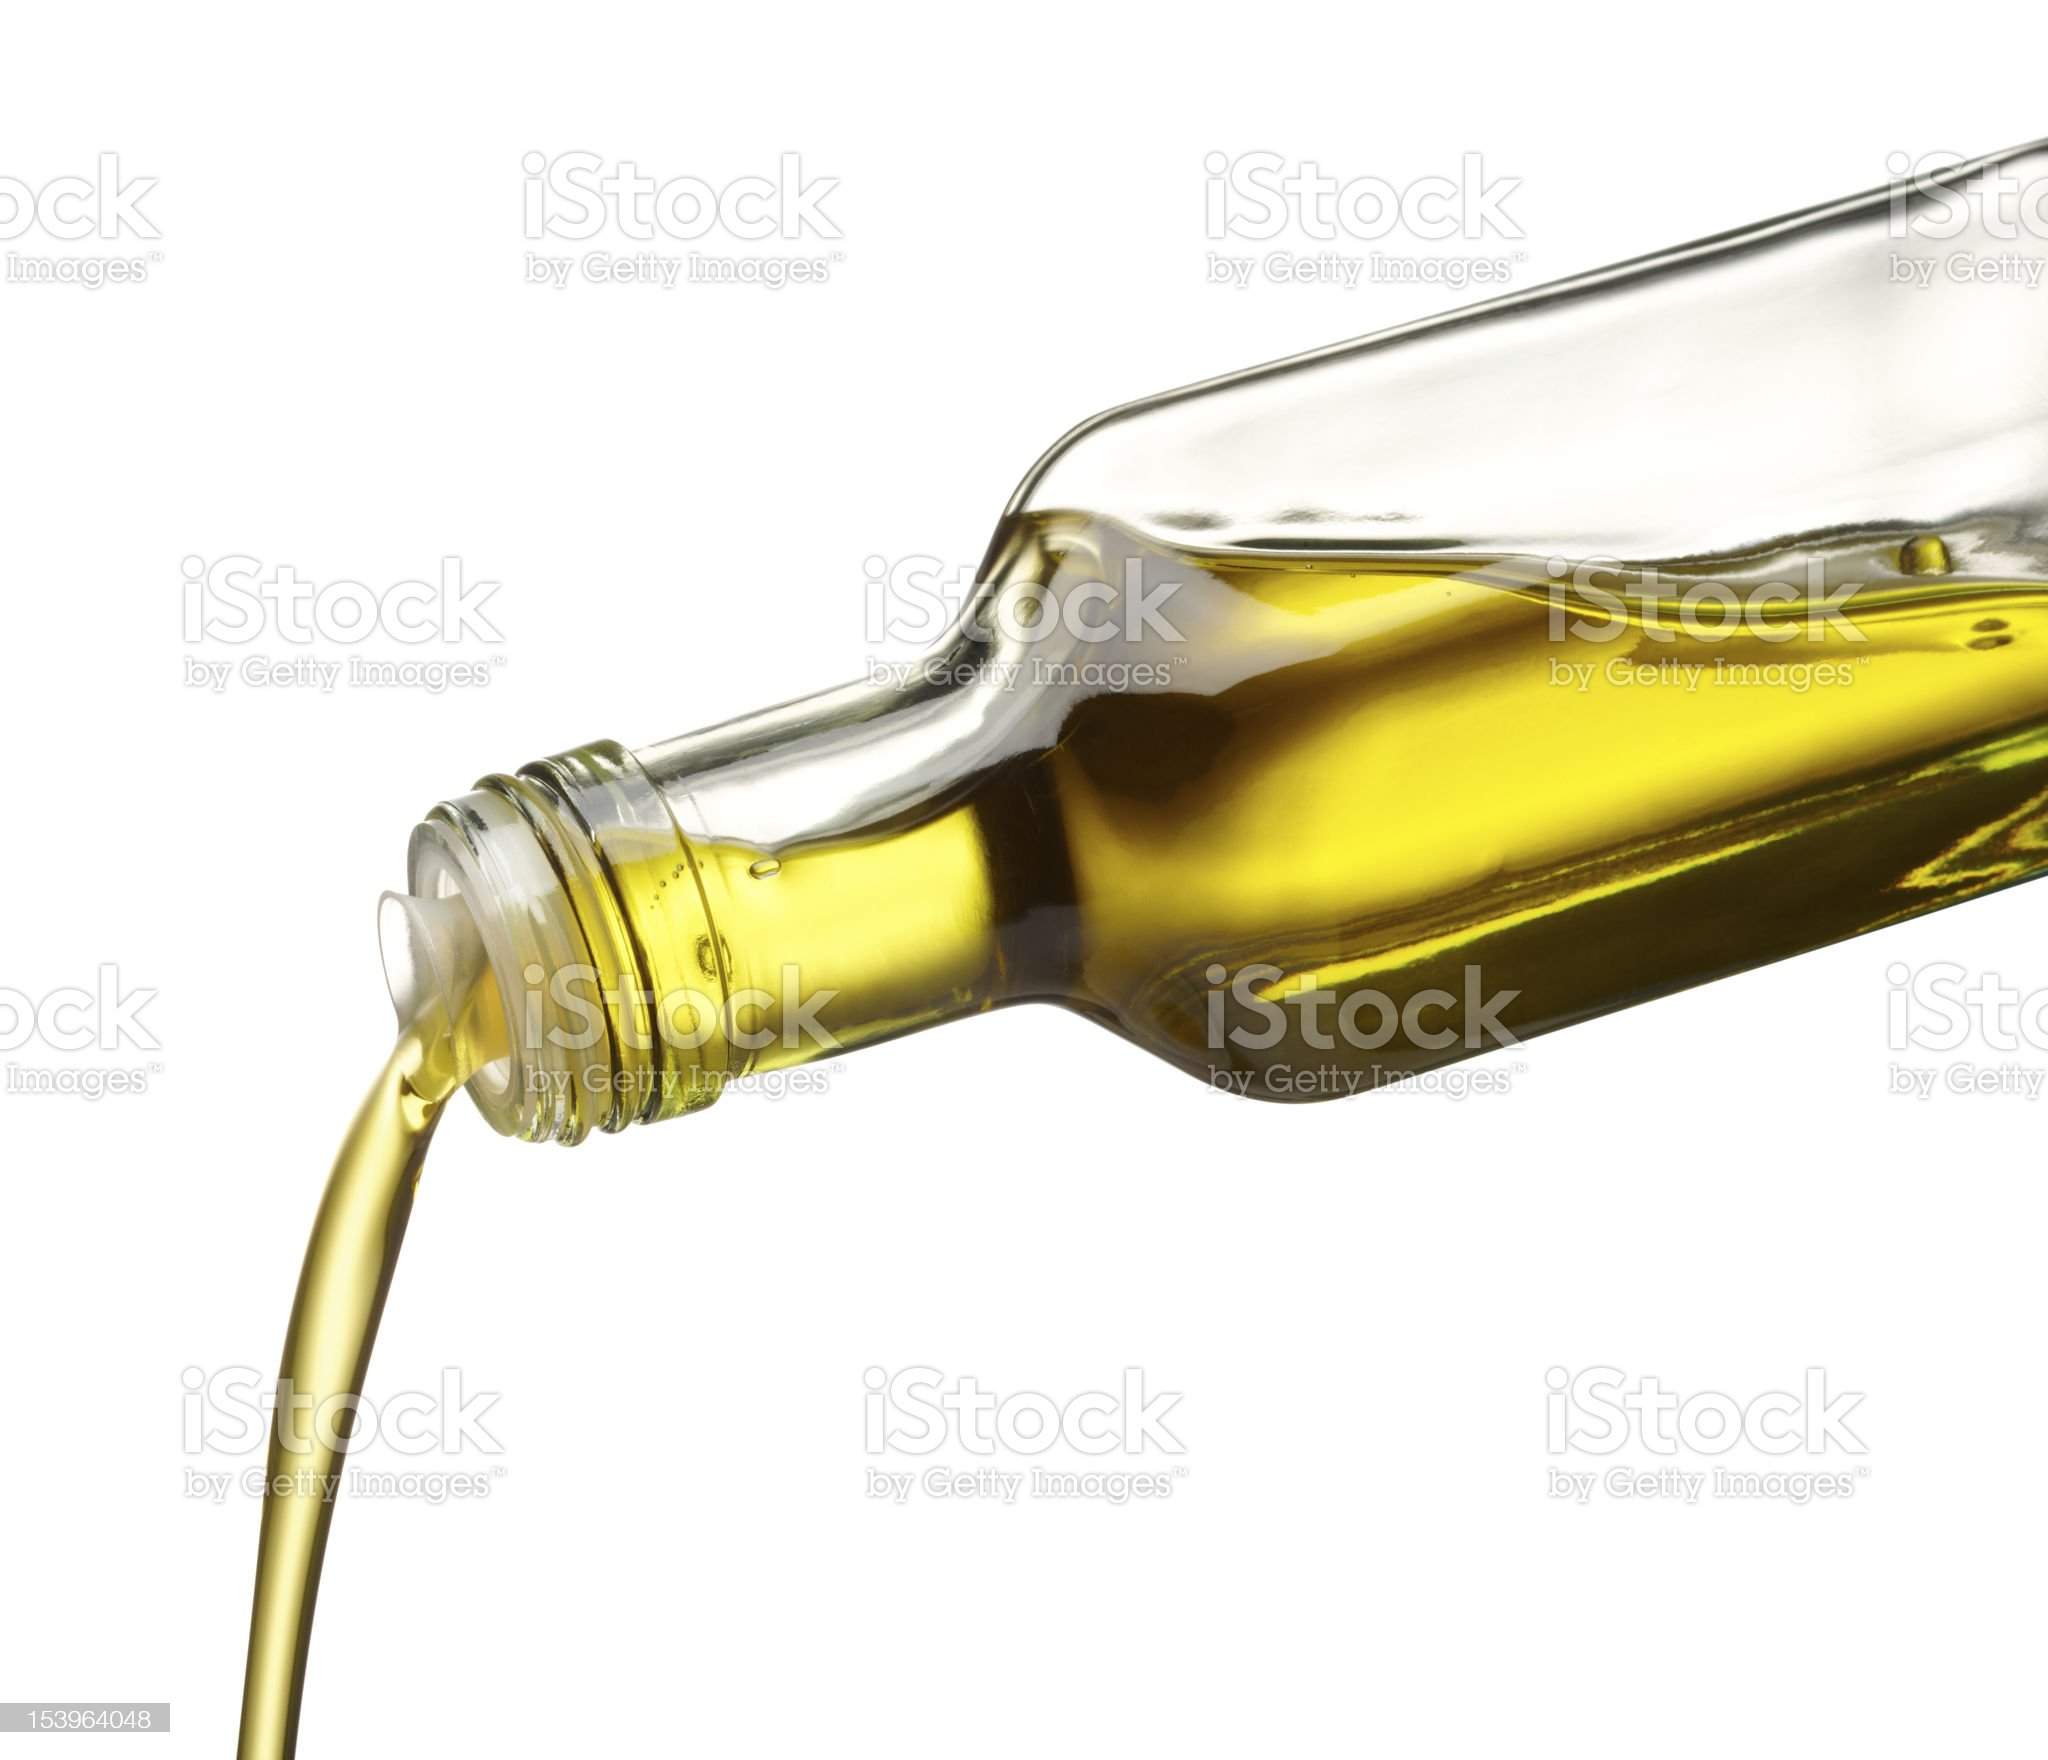 oil royalty-free stock photo